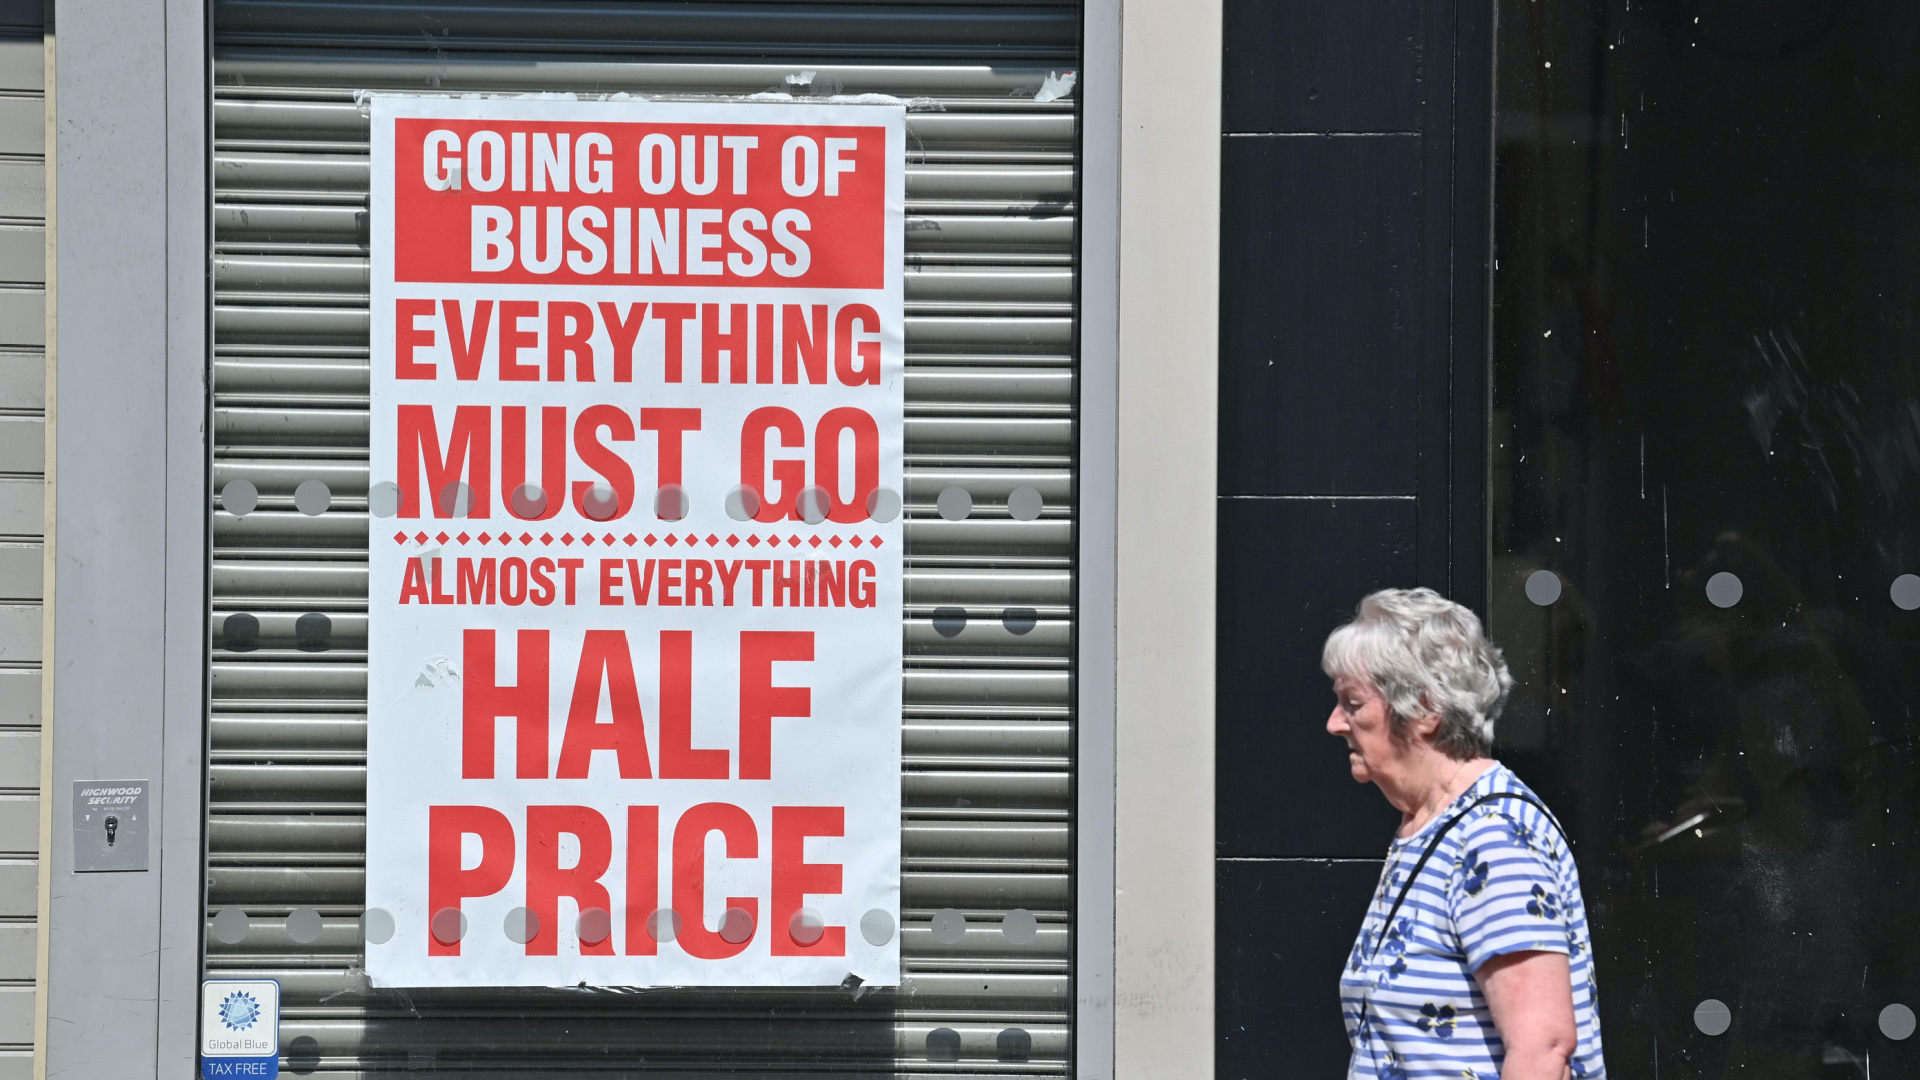 A 'Perfect Storm for UK businesses': shortage of overseas workers ever more problematic